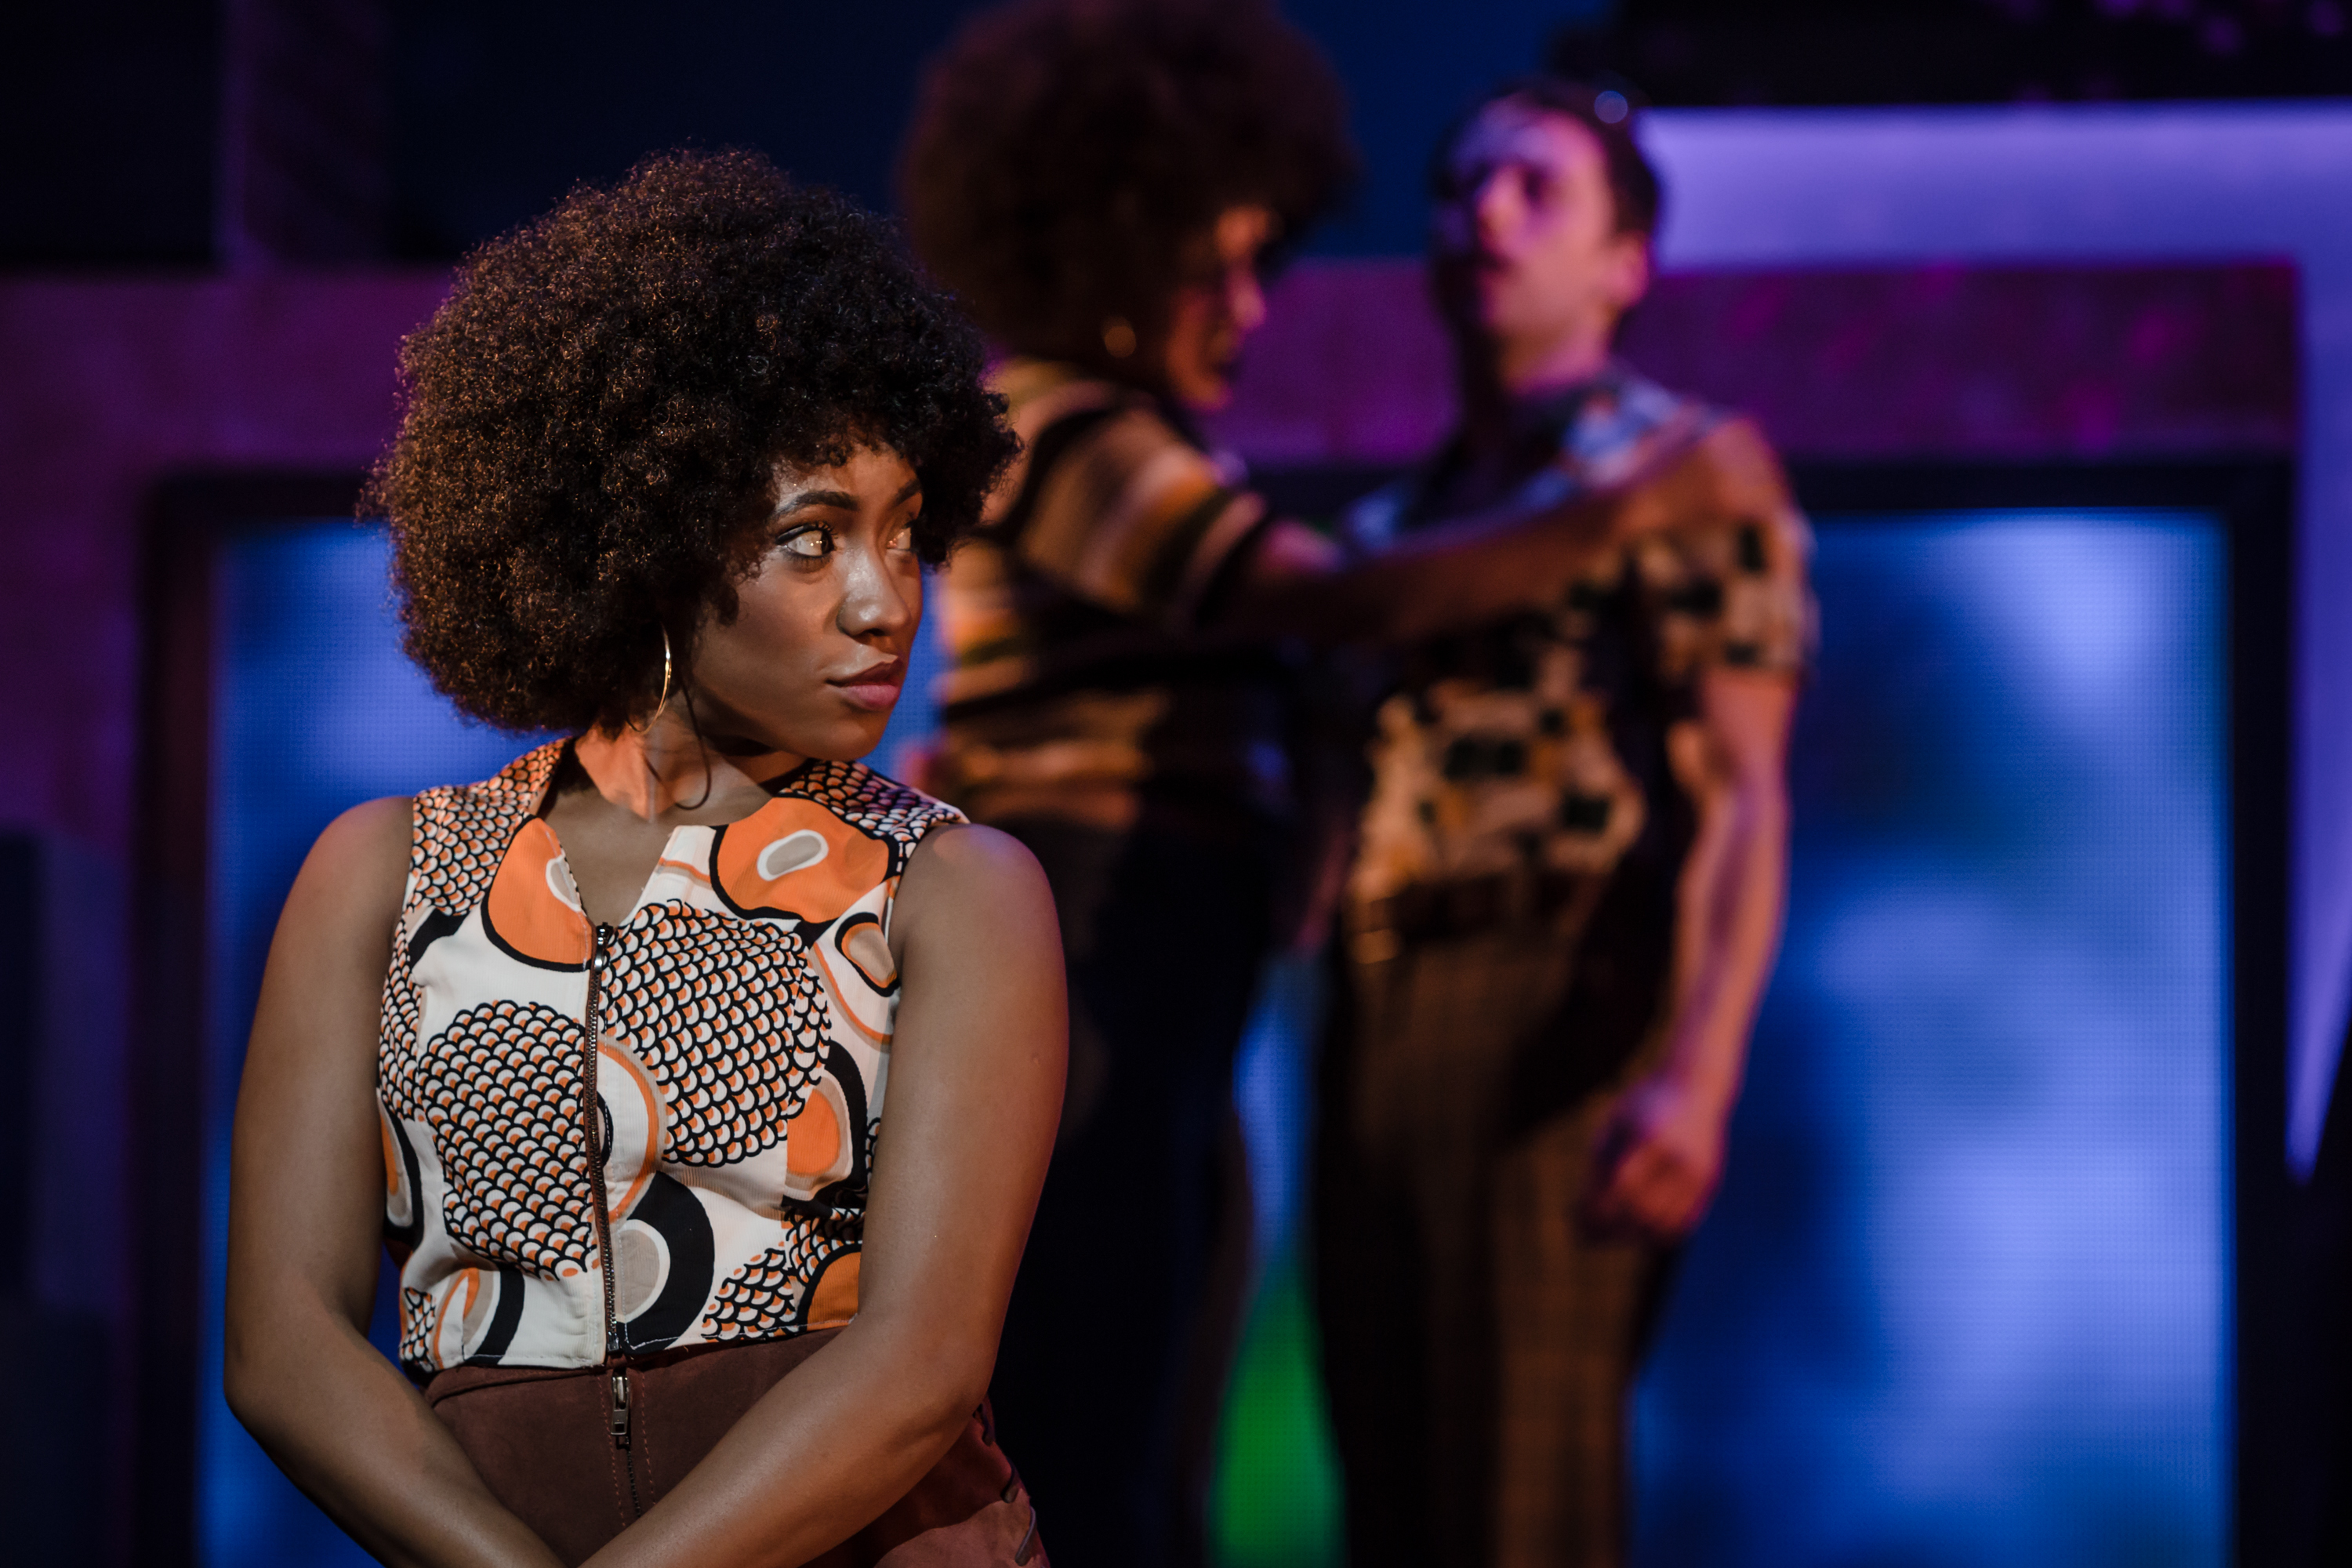 Review: The Bubbly Black Girl Sheds Her Chameleon Skin